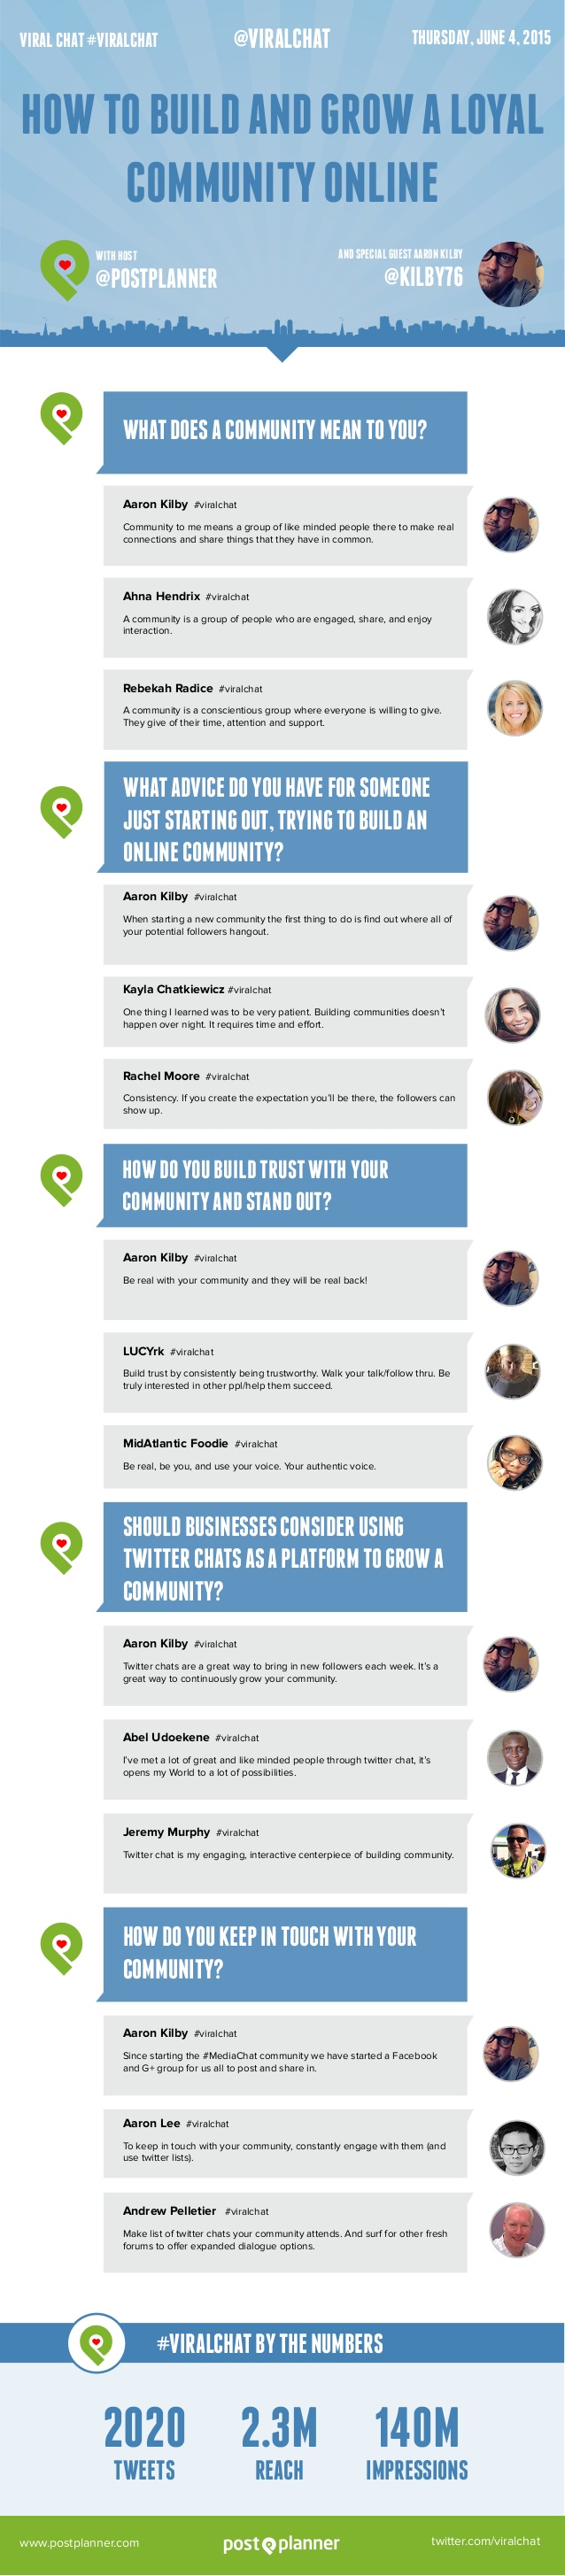 how-to-build-and-grow-a-loyal-community-online-with-aaron-kilby-viralchat-1-638